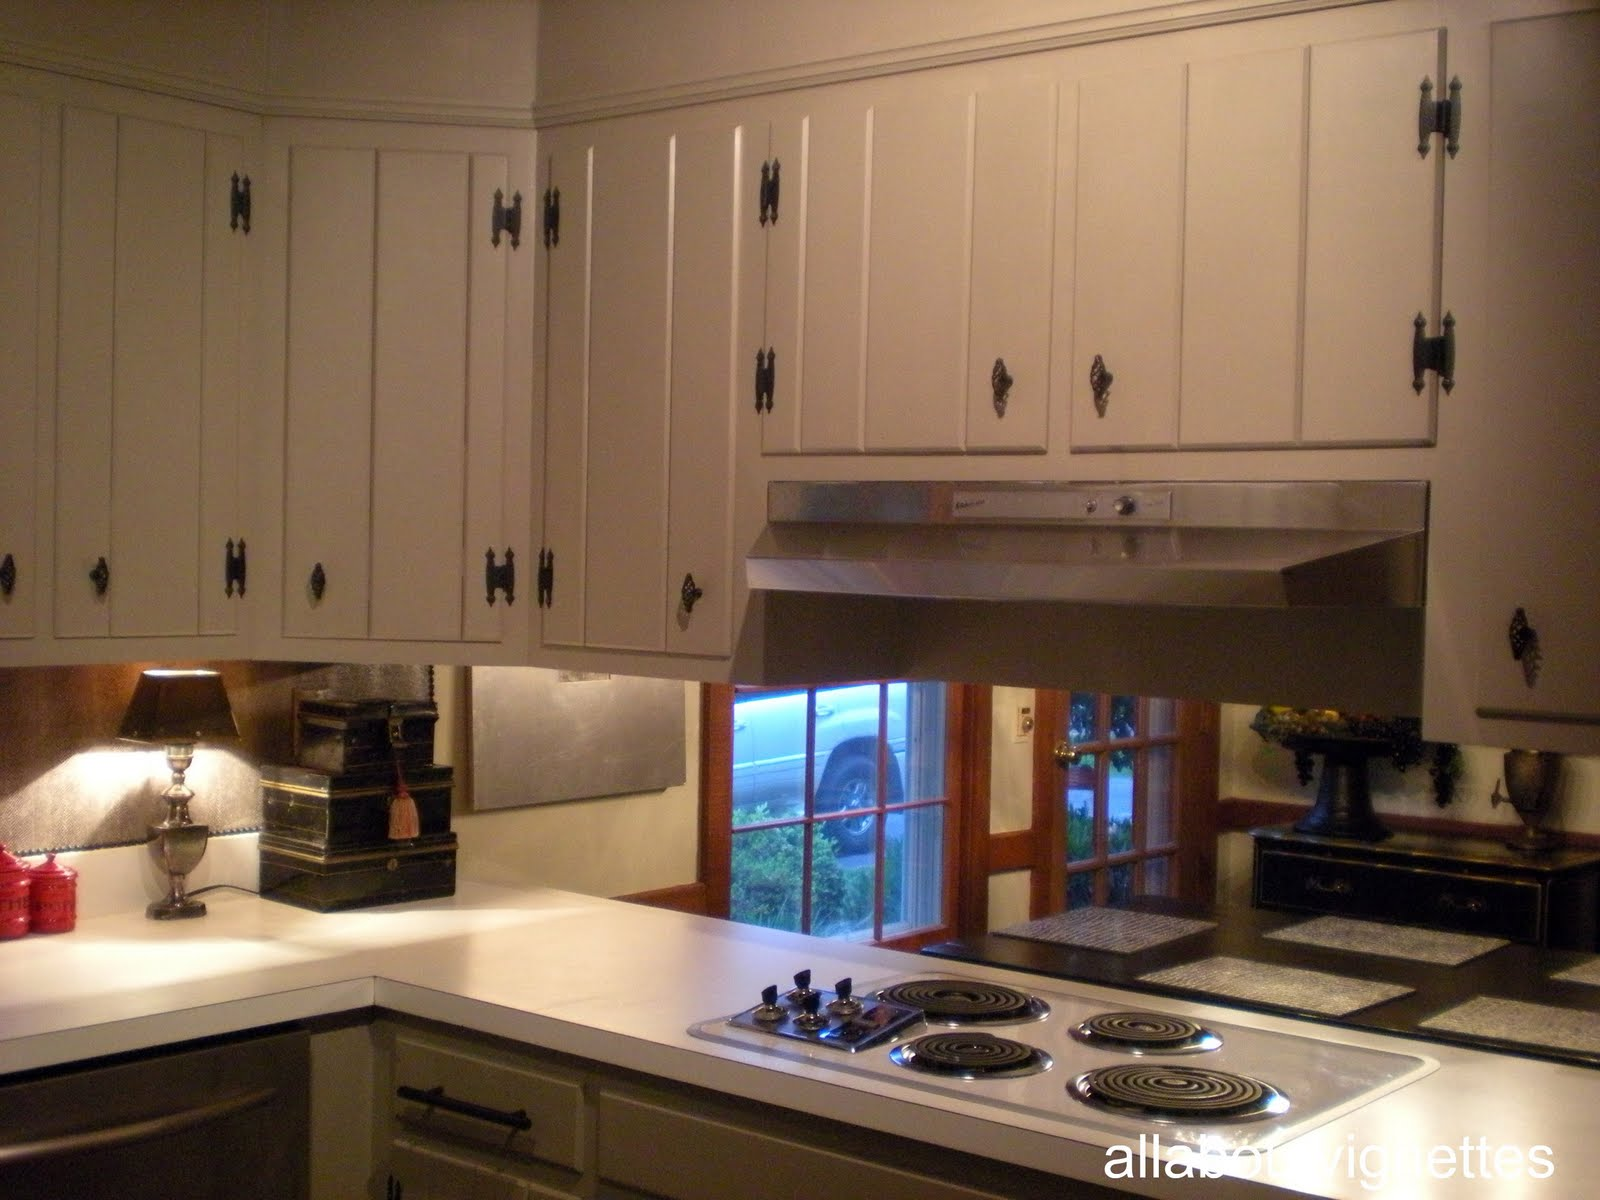 Knotty Pine Kitchen Cabinets Makeover